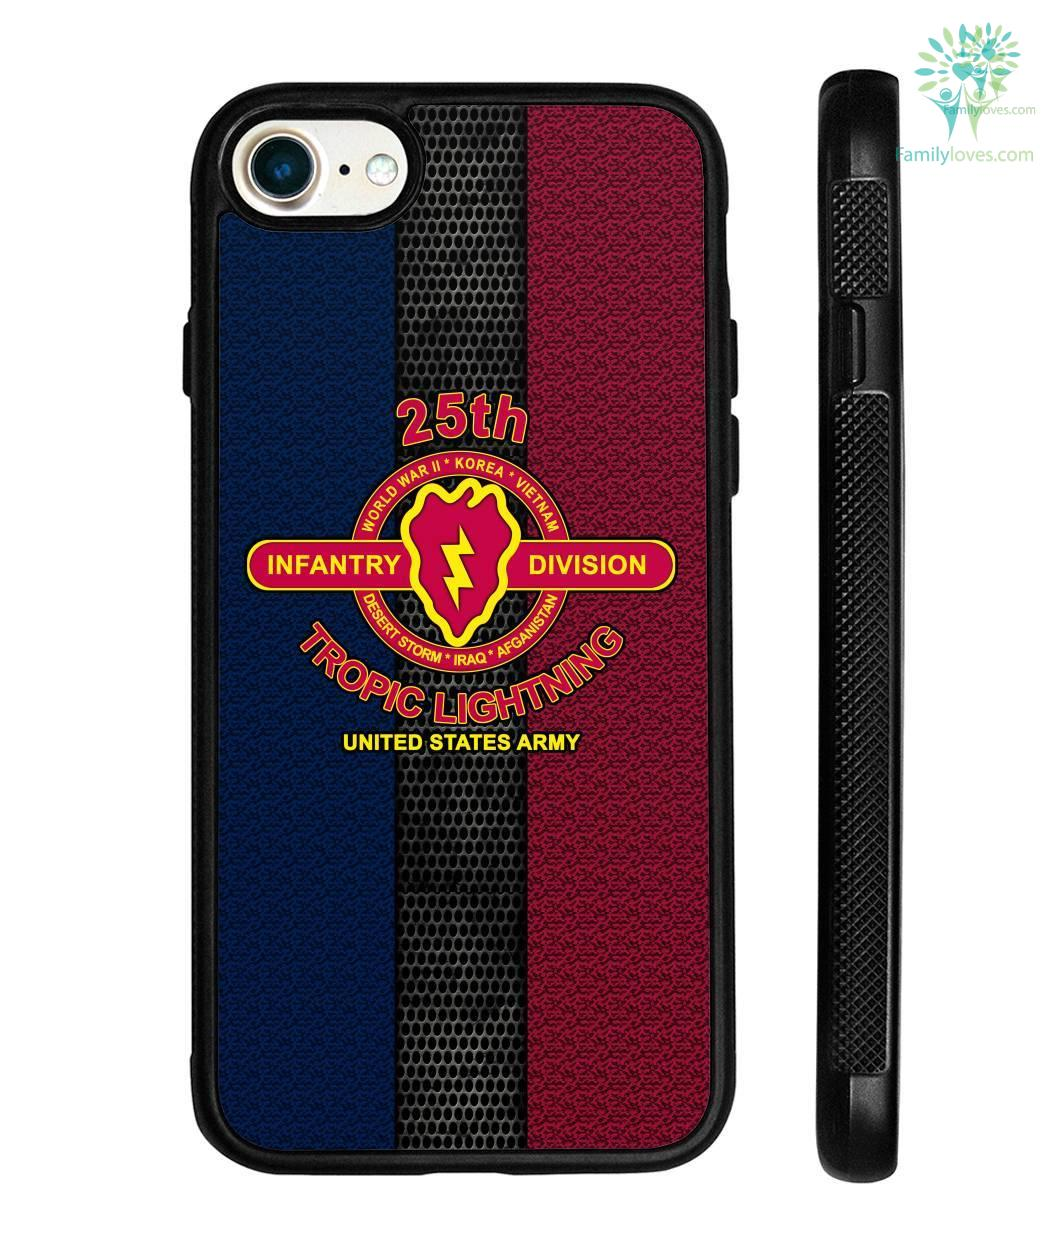 25th Infantry Division tropic lightning United States Army? iPhone cases -  FamilyLoves Com